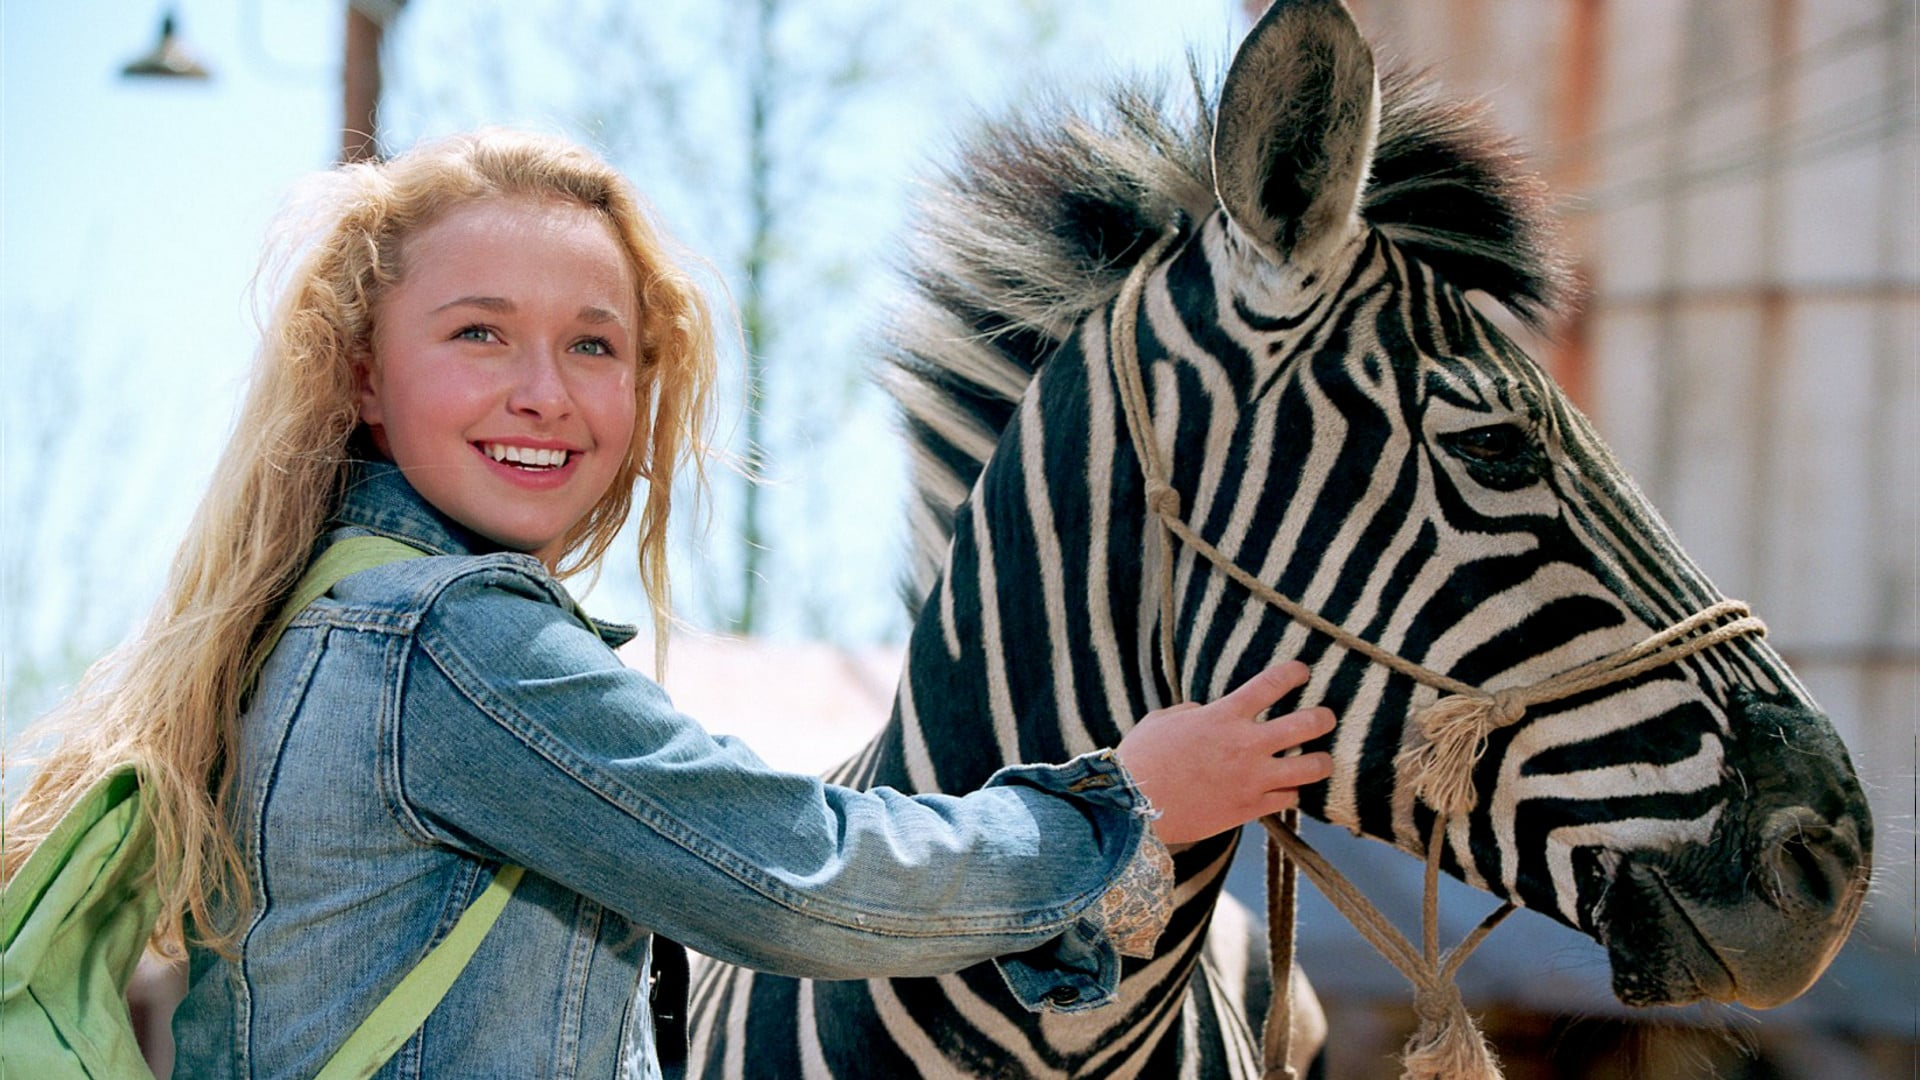 Hayden Panettiere and Stripes the zebra in Racing Stripes (2005)